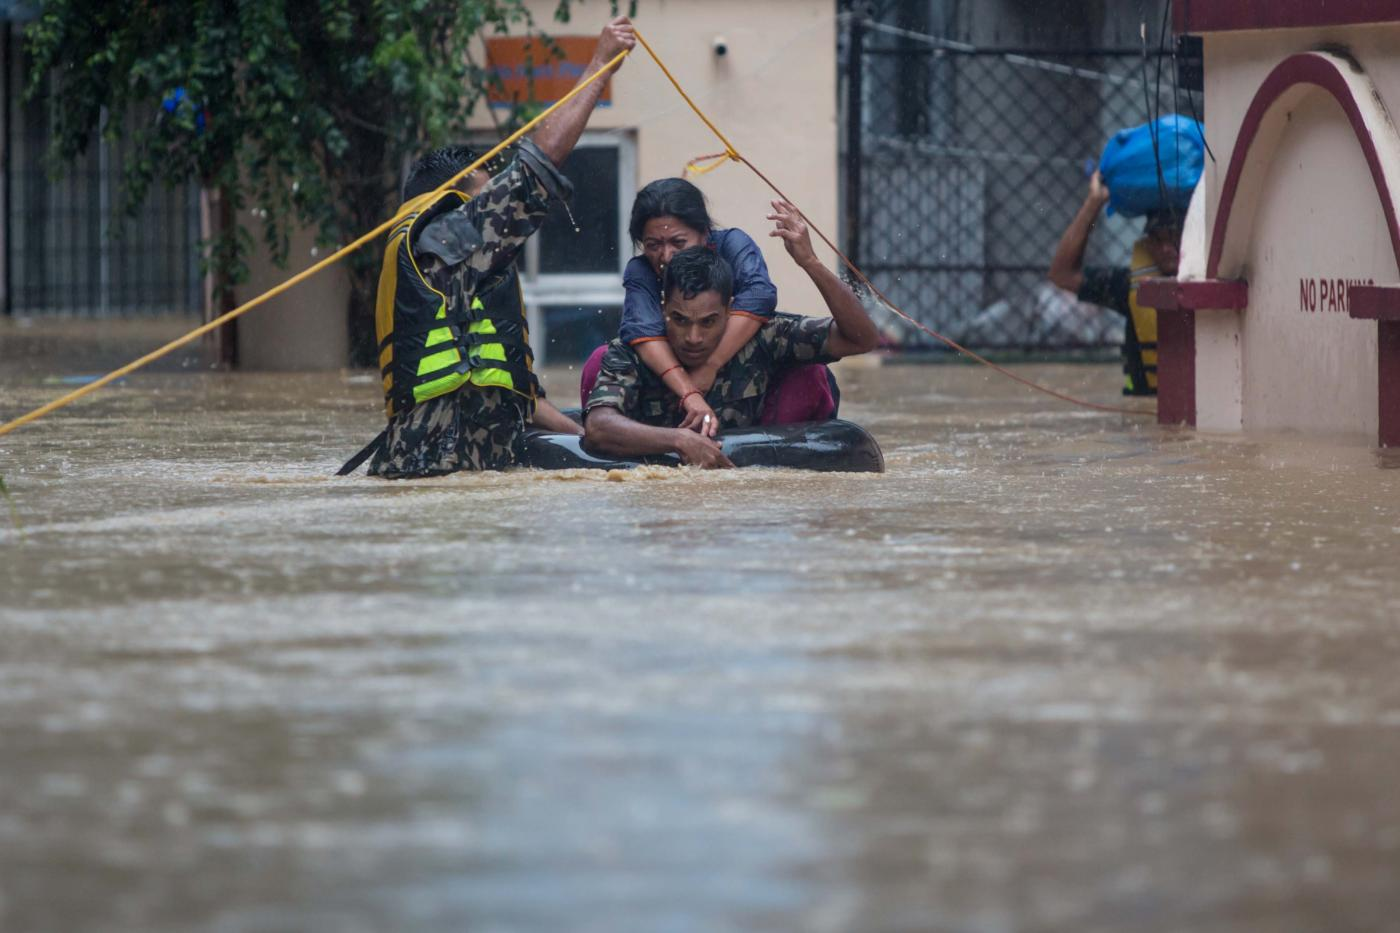 KATHMANDU, July 12, 2019 (Xinhua) -- Nepalese army personnel rescue local people after a heavy rainfall in Kathmandu, Nepal, July 12, 2019. Nepal was hit by heavy rainfall that caused floods and landslides in many places. (Xinhua/Sulav Shrestha/IANS) by sulav shrestha.